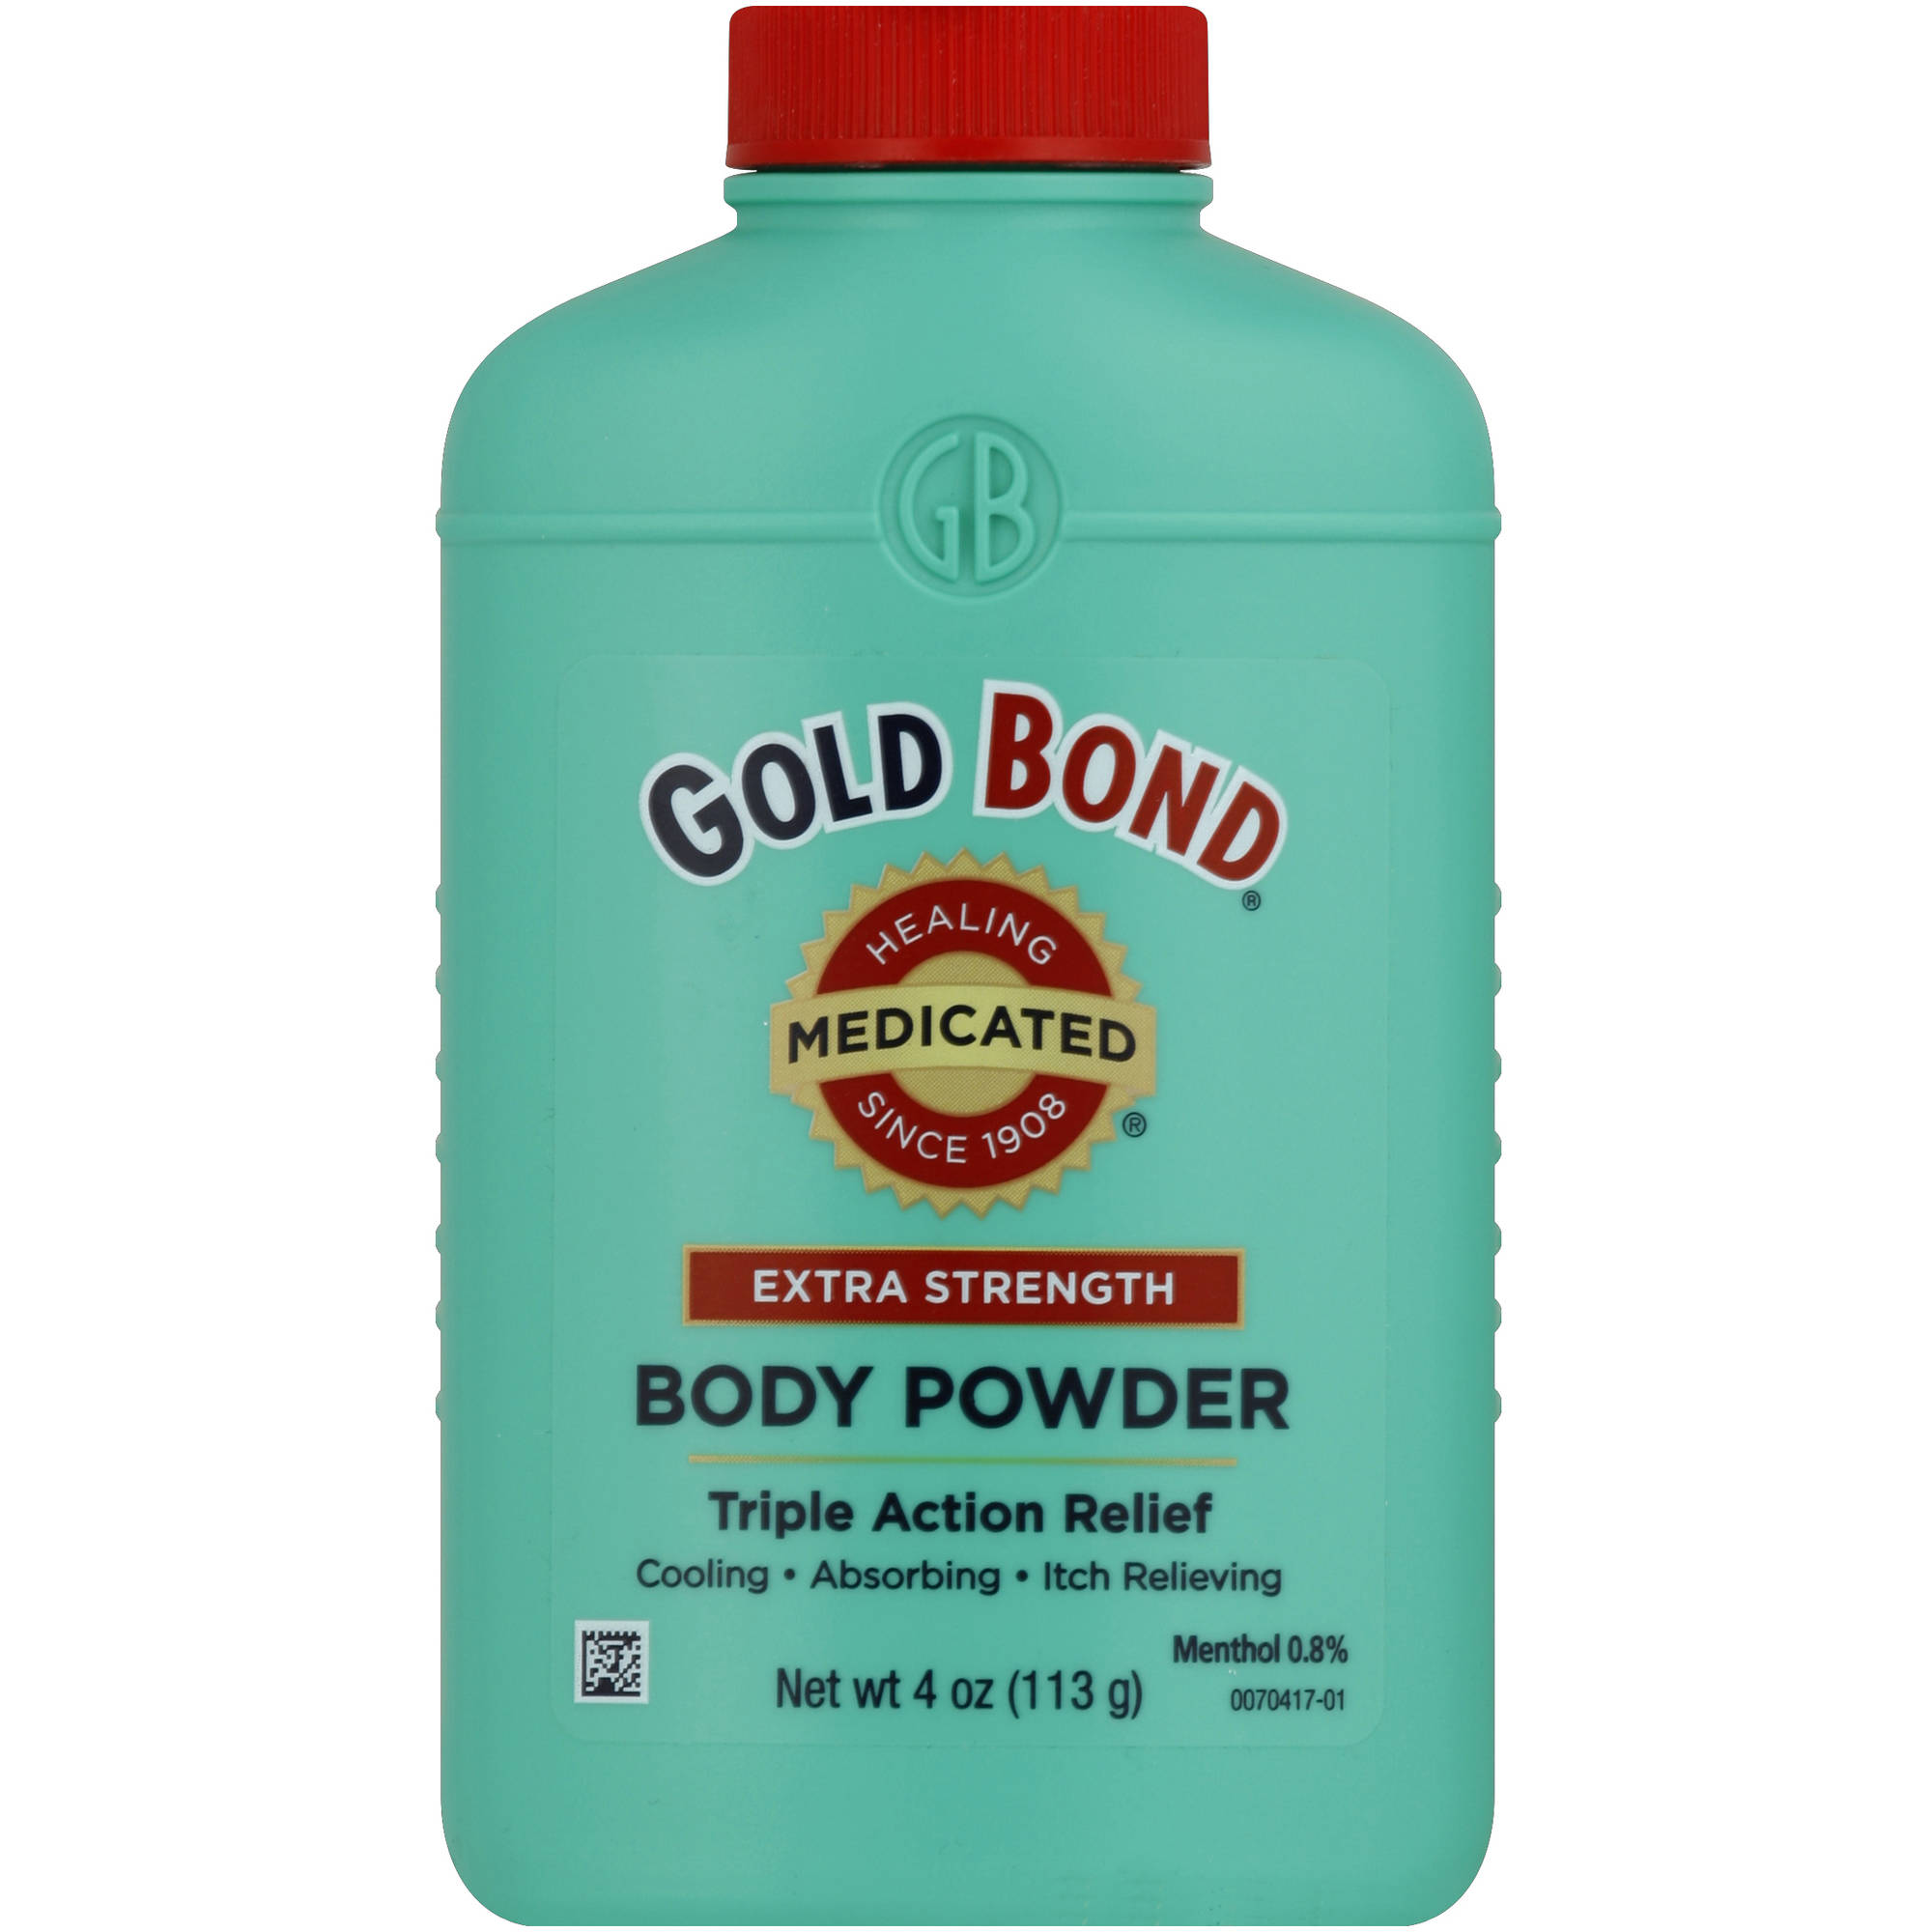 Gold Bond Extra Strength Body Powder, 4 oz